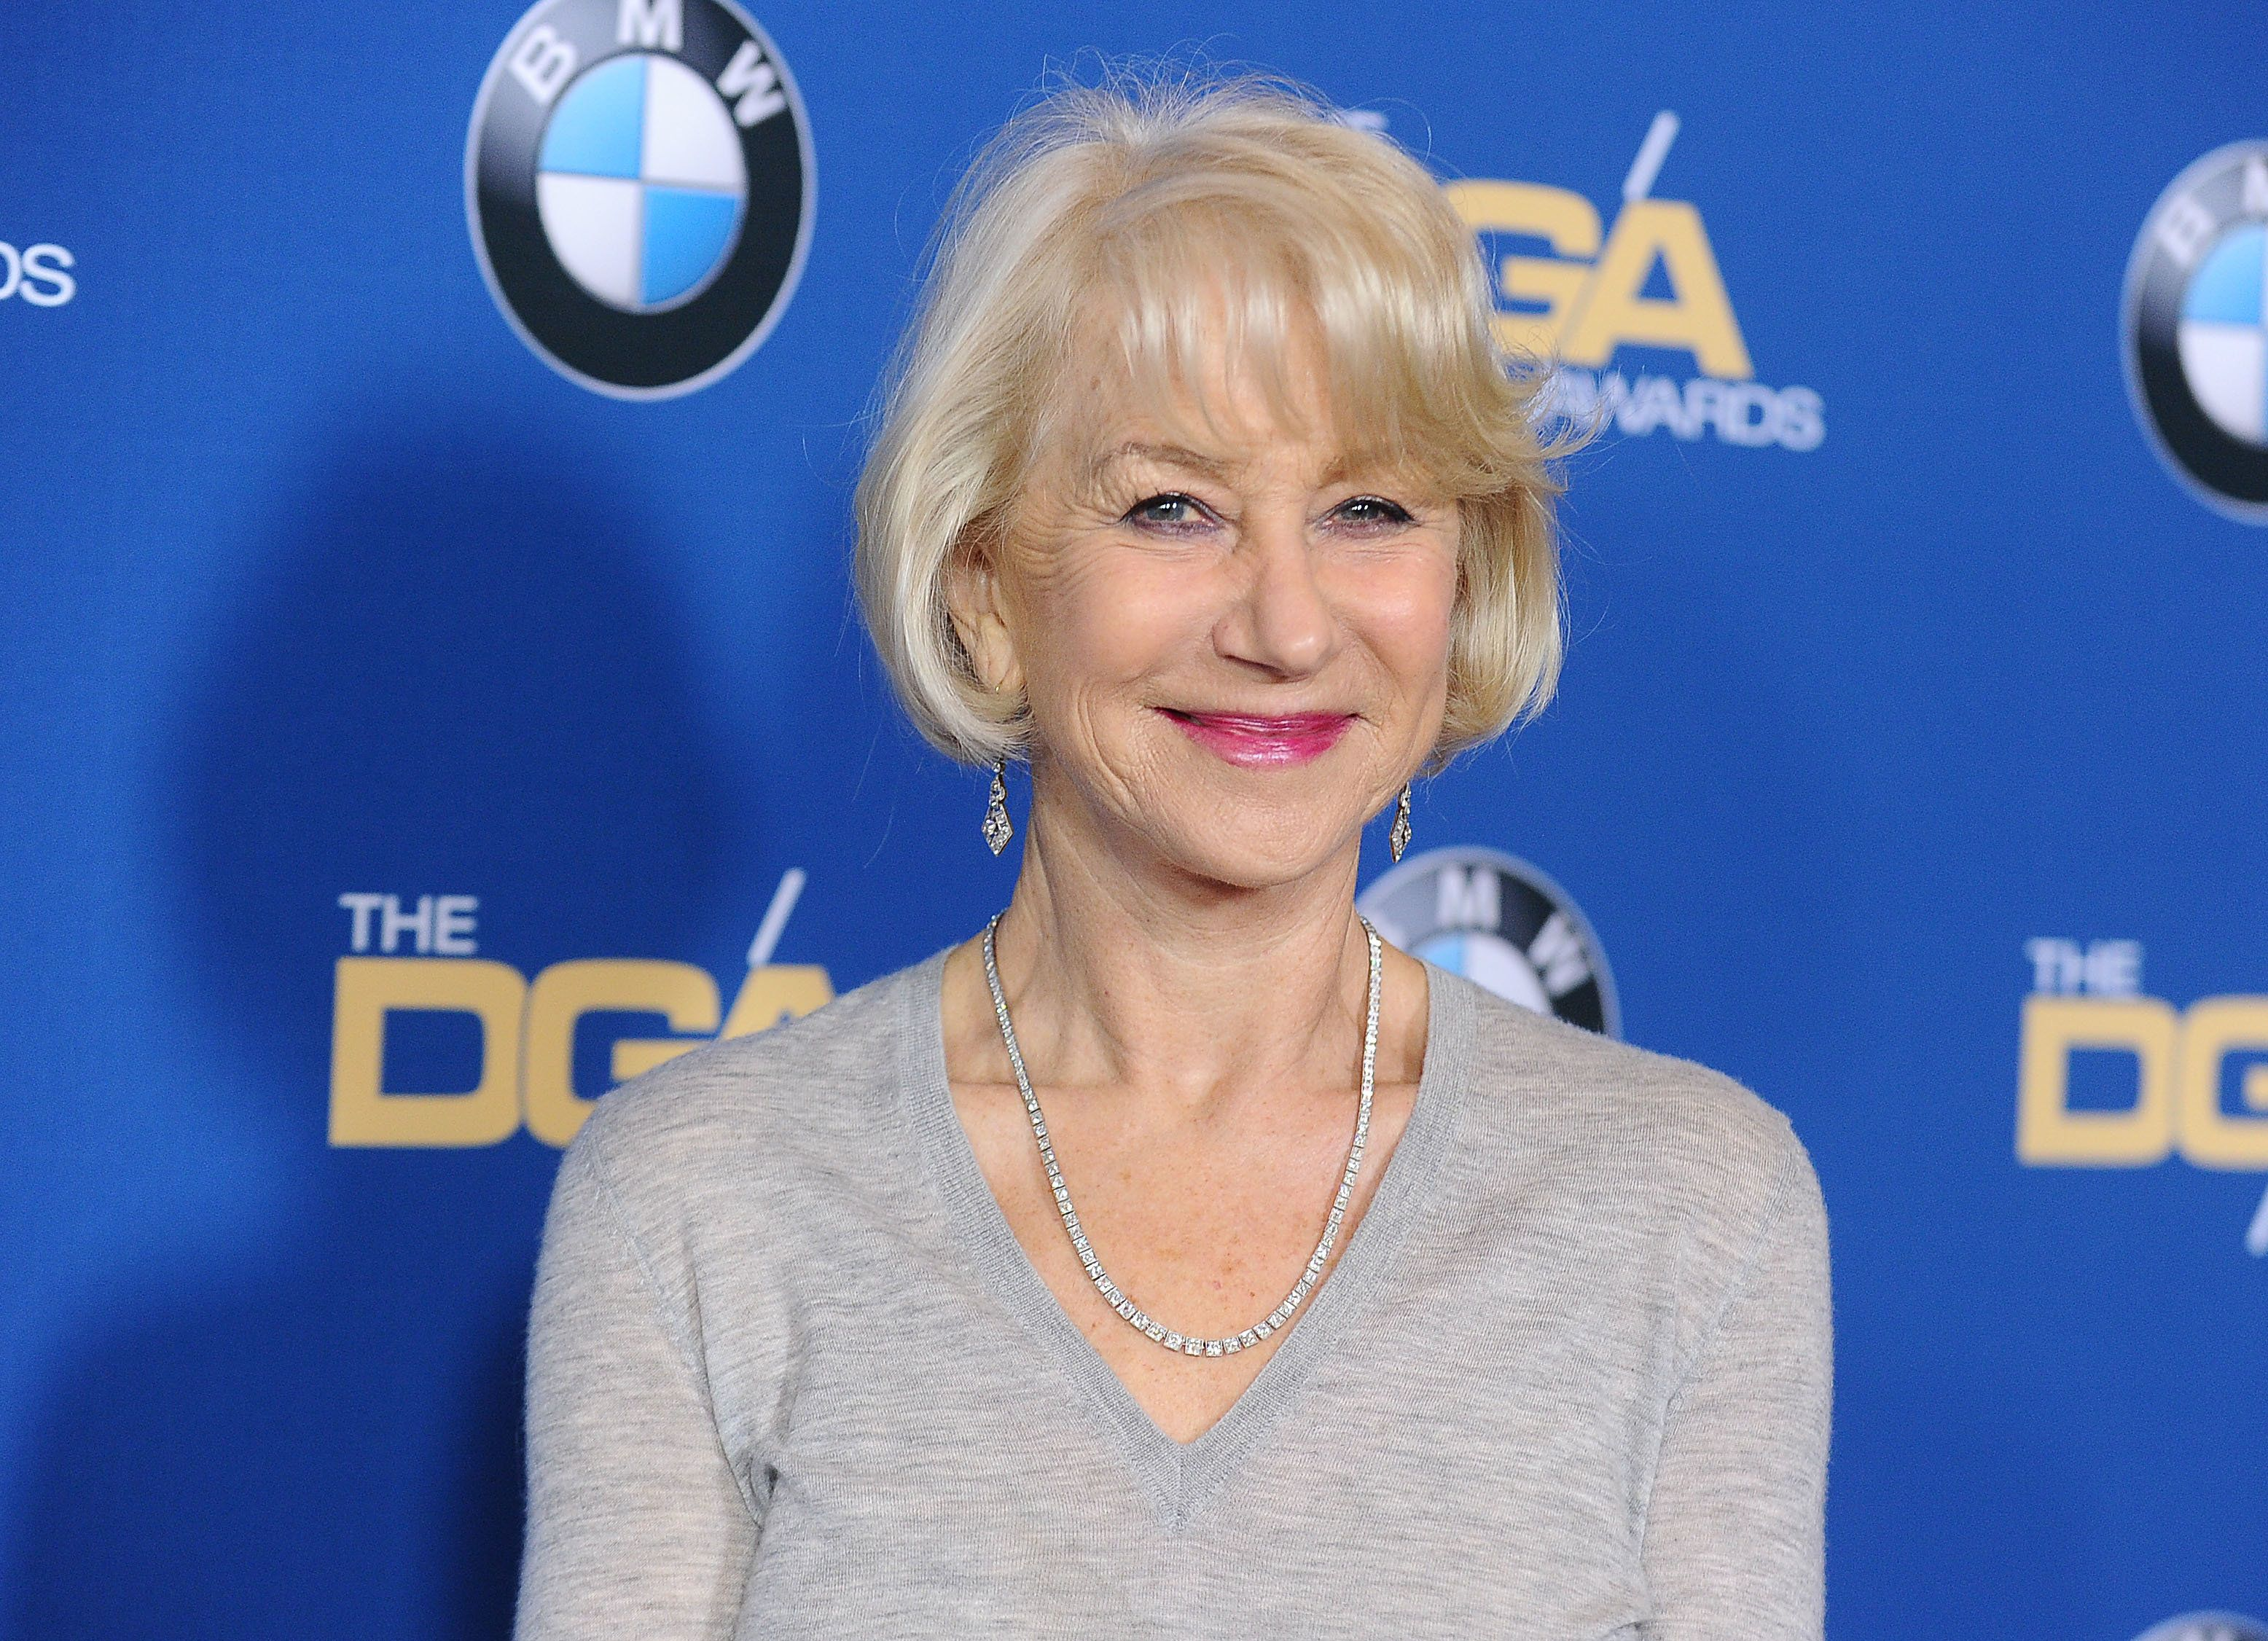 BEVERLY HILLS, CA - FEBRUARY 04:  Actress Helen Mirren attends the 69th annual Directors Guild of America Awards at The Beverly Hilton Hotel on February 4, 2017 in Beverly Hills, California.  (Photo by Jason LaVeris/FilmMagic)